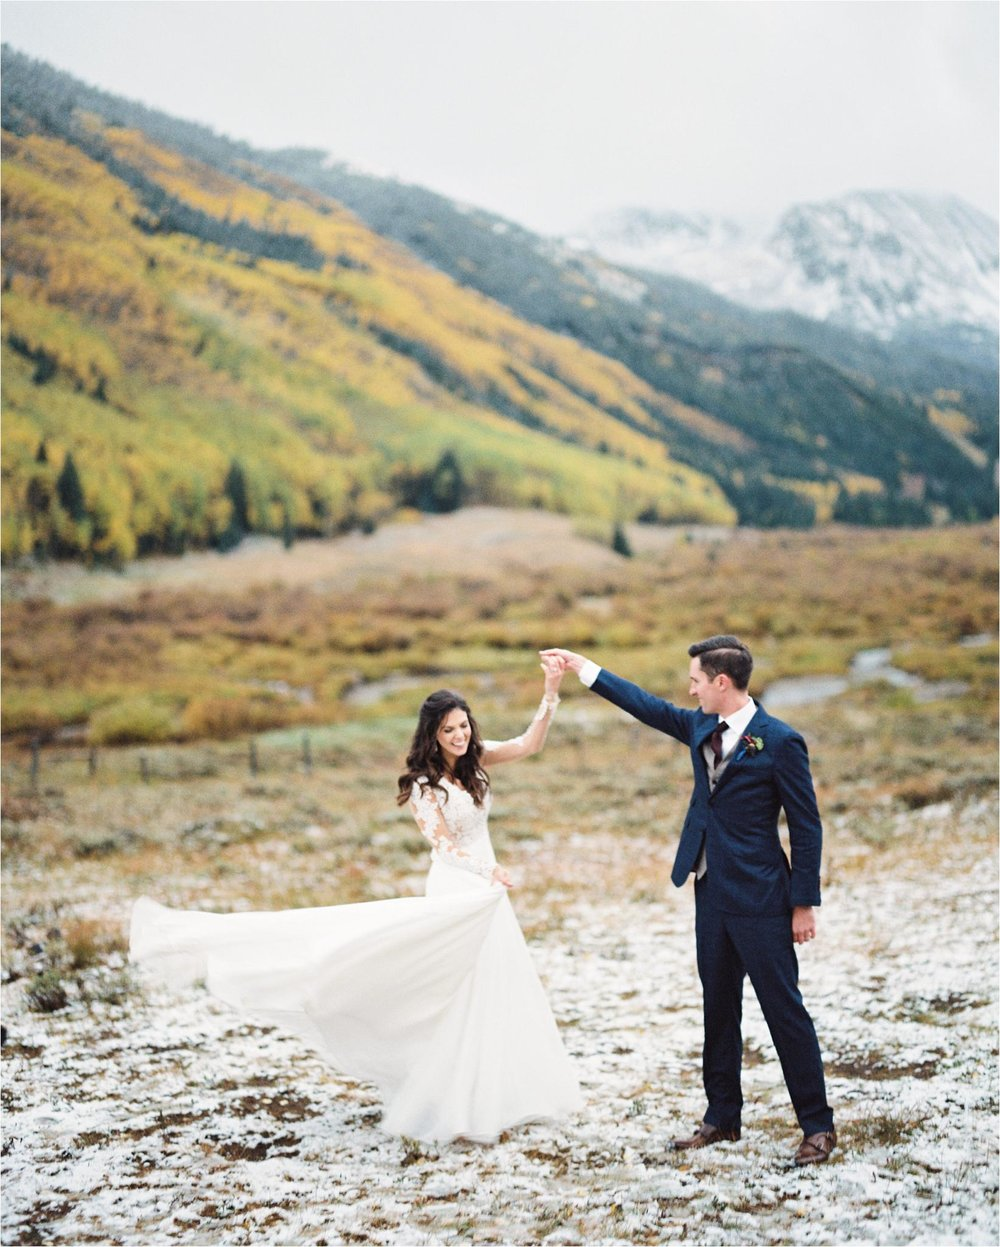 aspen_film_wedding_photographer_1228.jpg